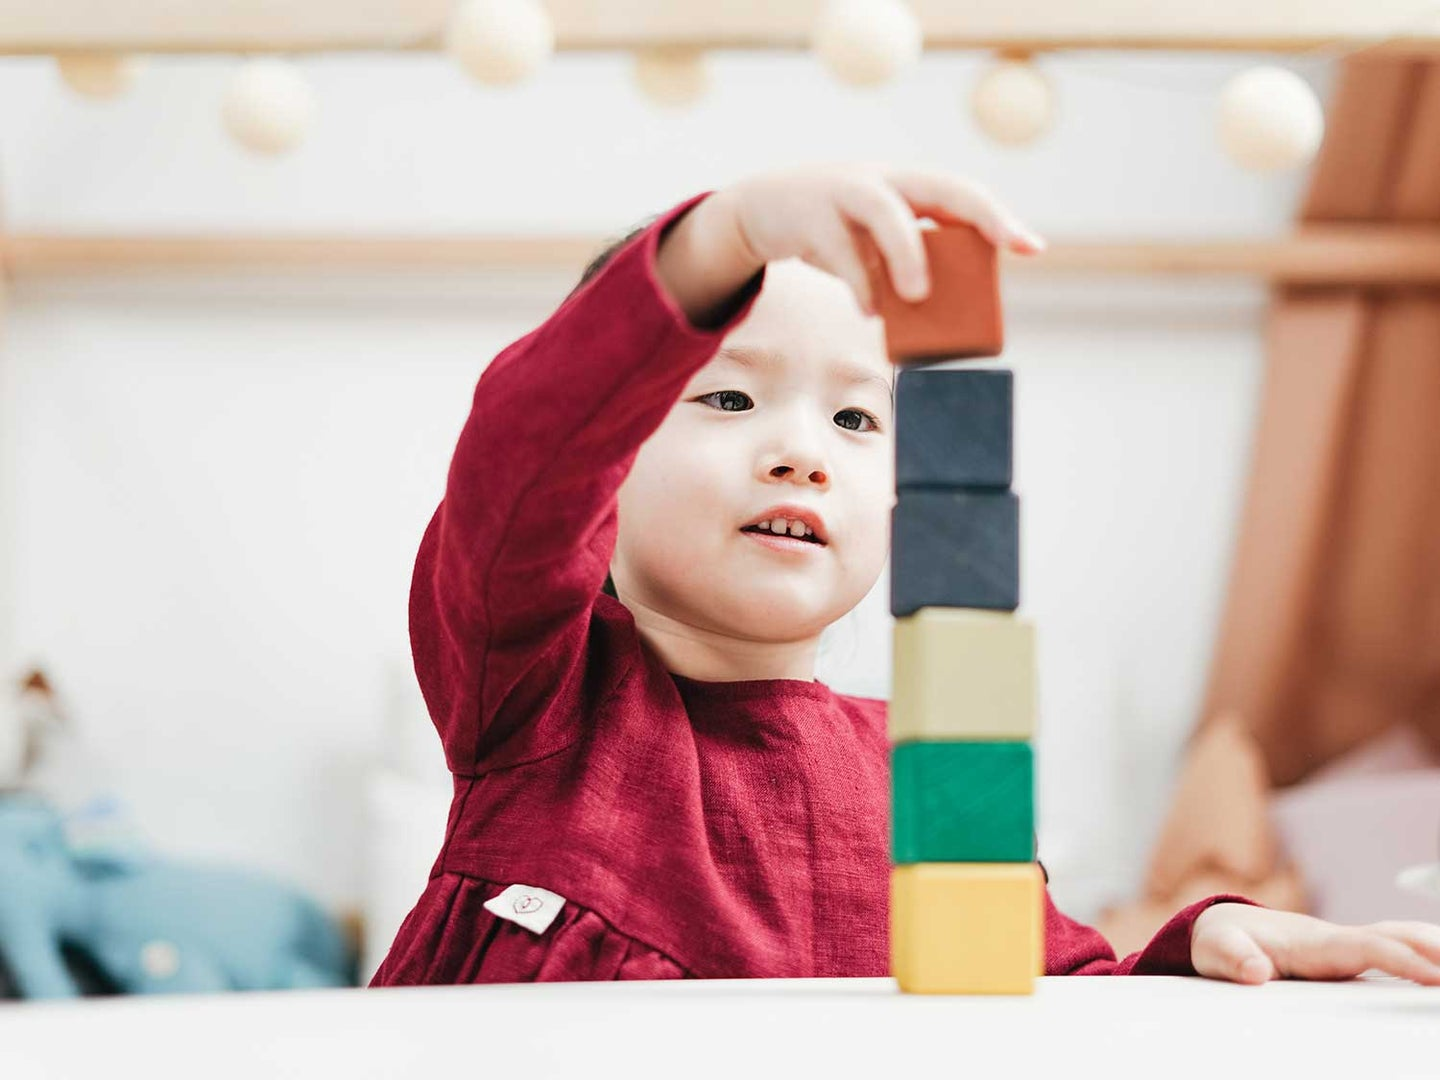 Boy playing with wooden blocks.